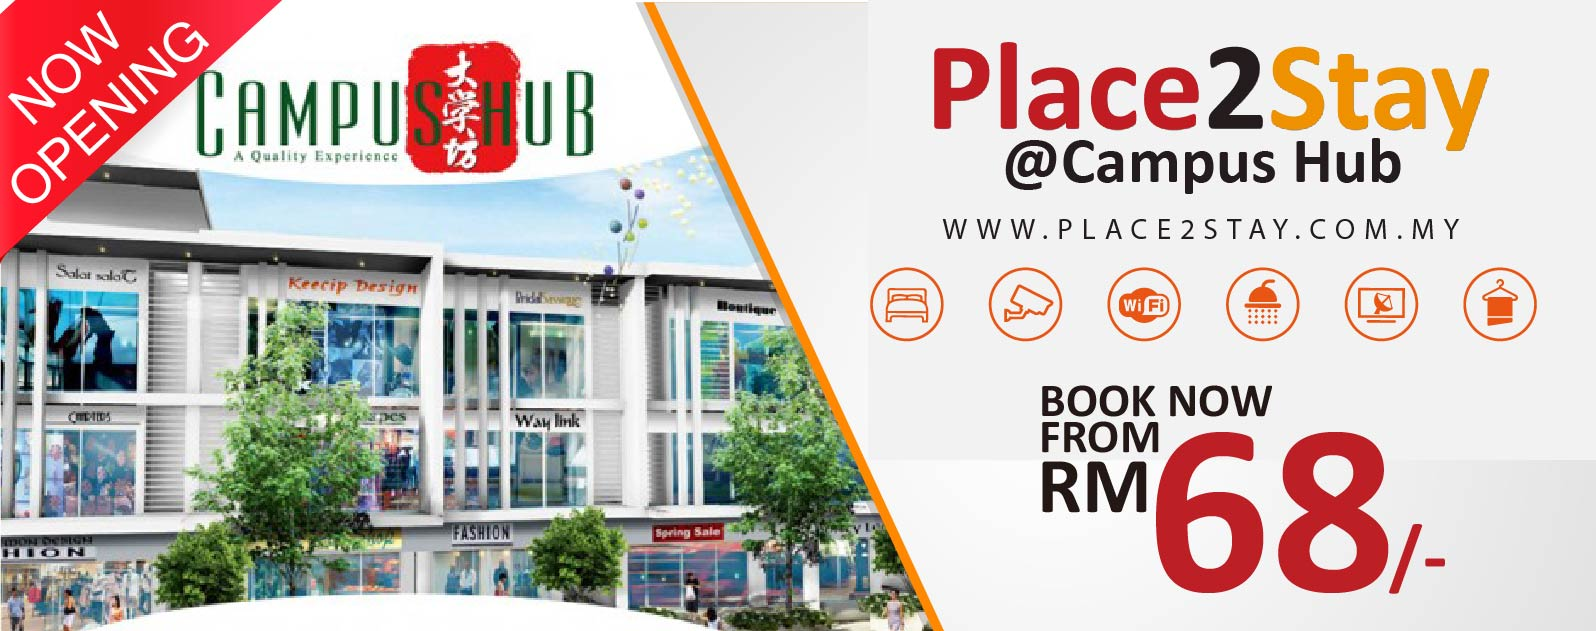 Place2Stay@Campus Hub